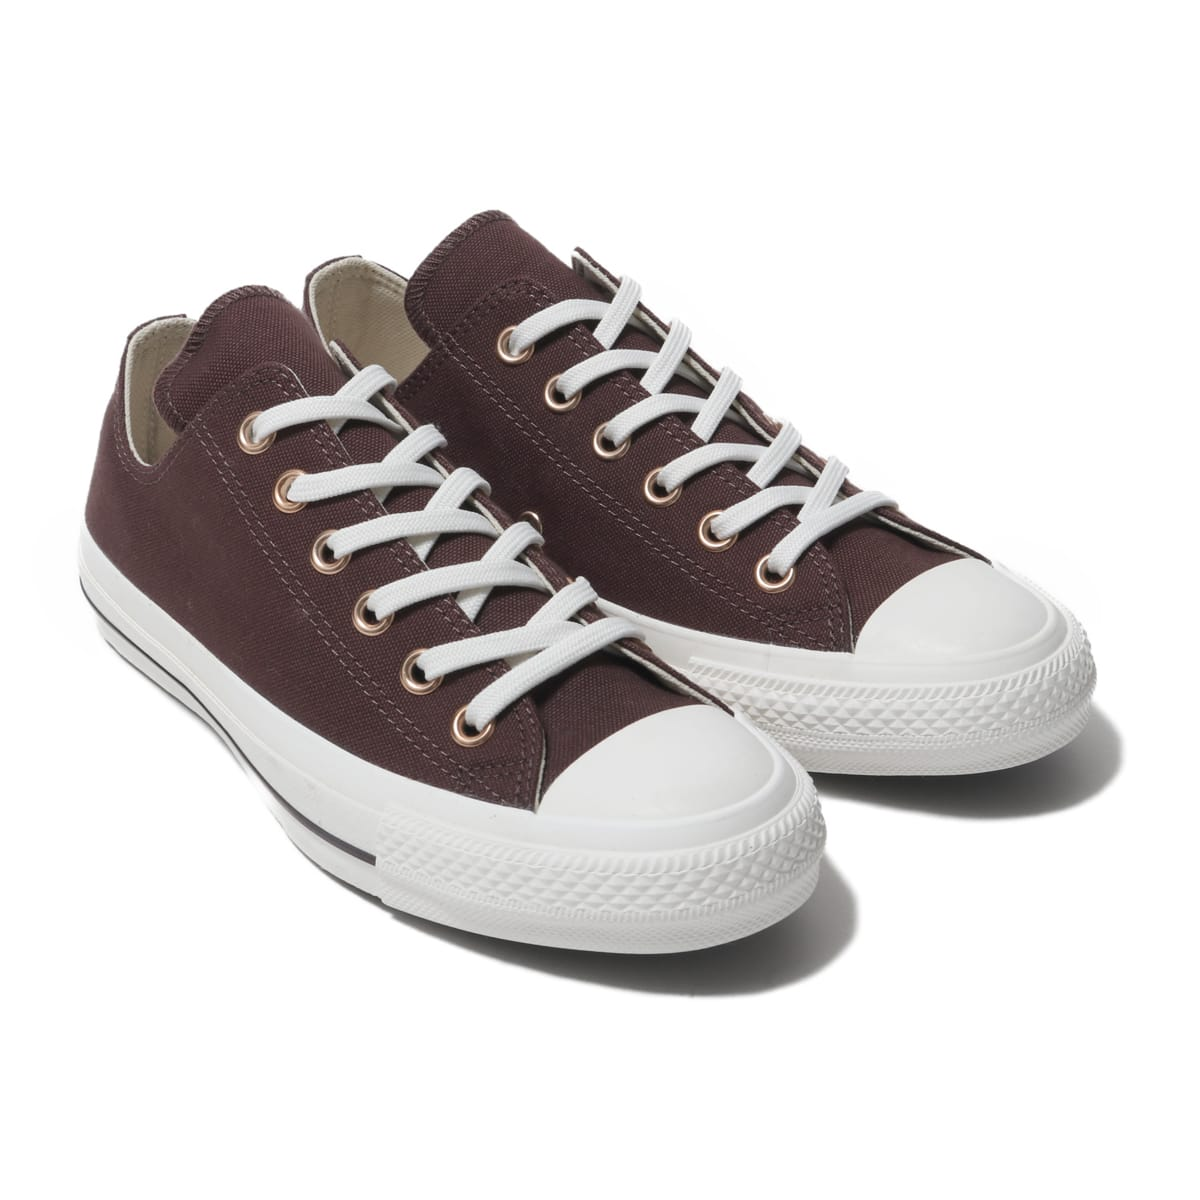 CONVERSE ALL STAR 100 PKG COLORS OX CHOCOLATE 19FA-S_photo_large